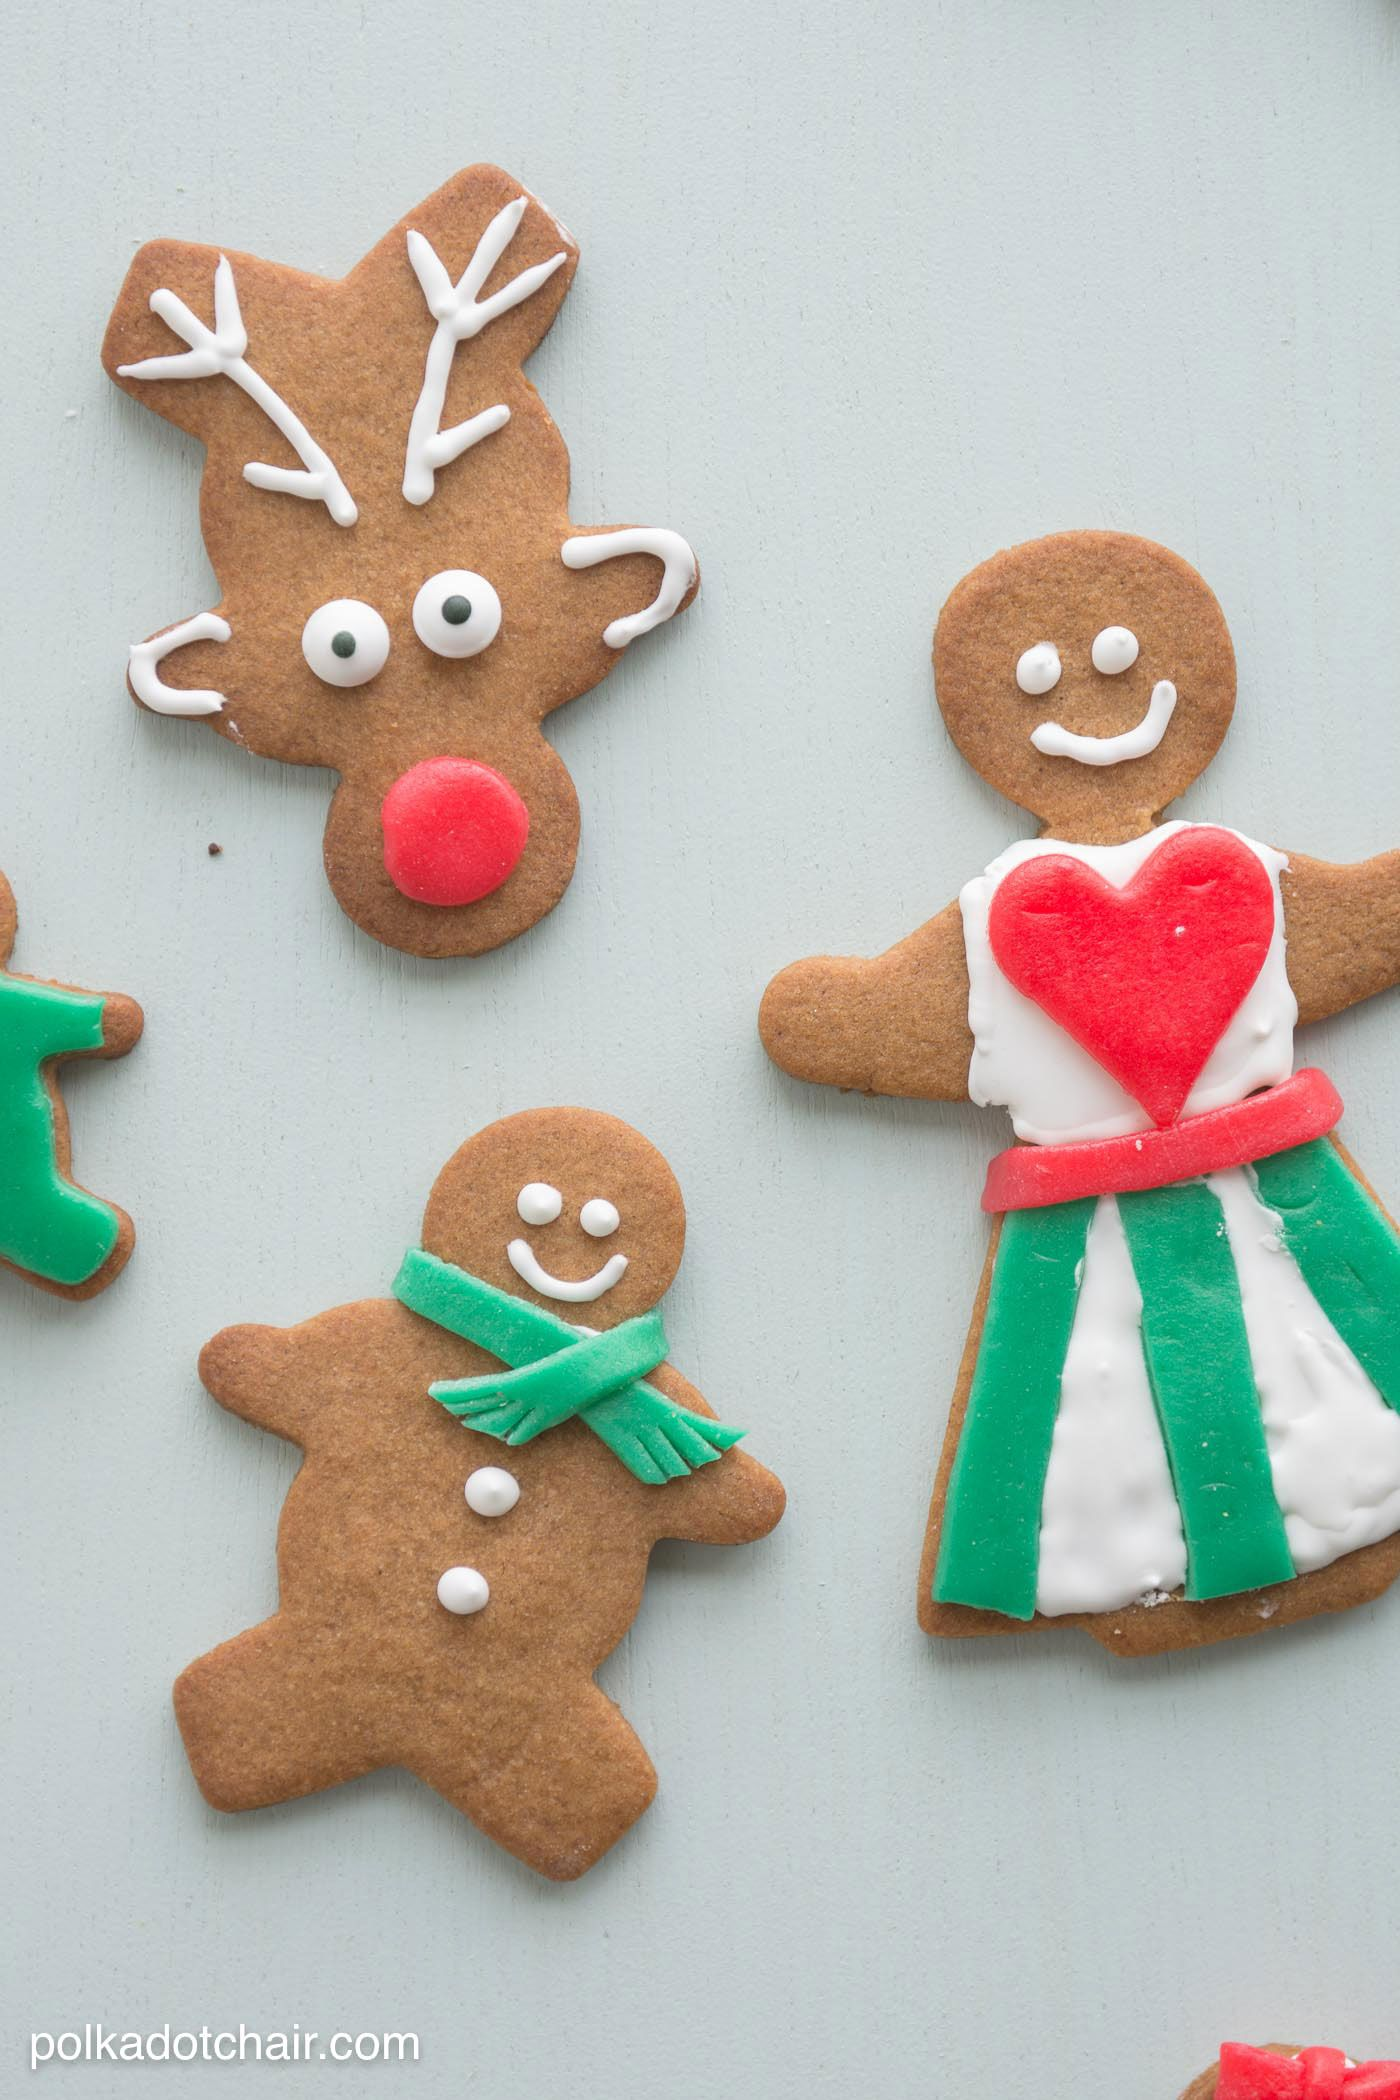 Christmas Gingerbread Cookie Decorating Ideas use Airheads candy to cut out  clothes  and accessories for your gingerbread men  sc 1 st  Pinterest & Gingerbread Cookie Decorating Ideas | Pinterest | Airheads candy ...